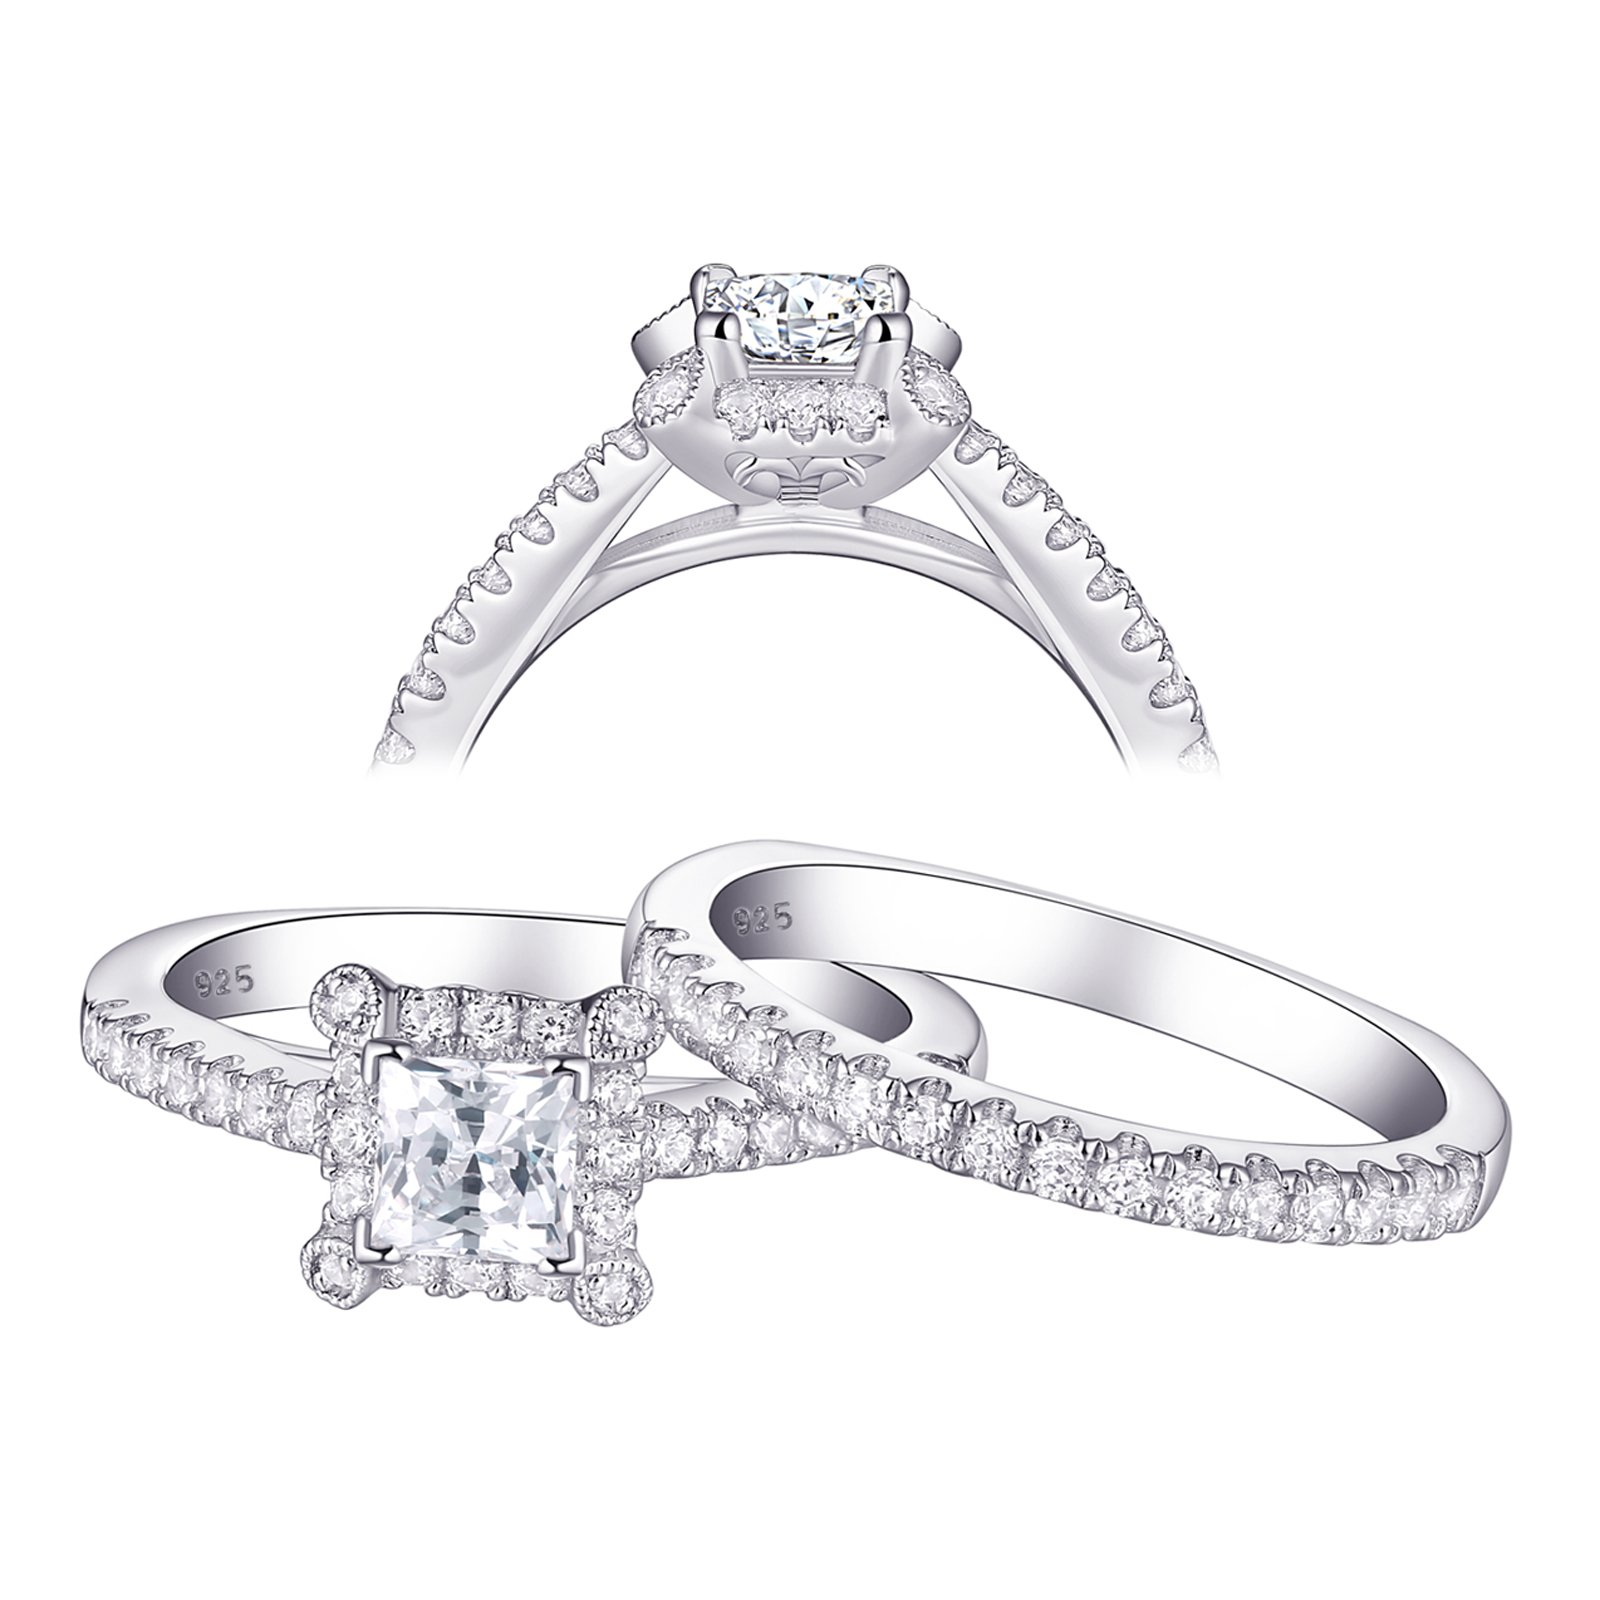 Newshe Jewellery Wedding Band Engagement Ring Set For Women 925 Sterling Silver Princess White AAA Cz 1ct Size 9